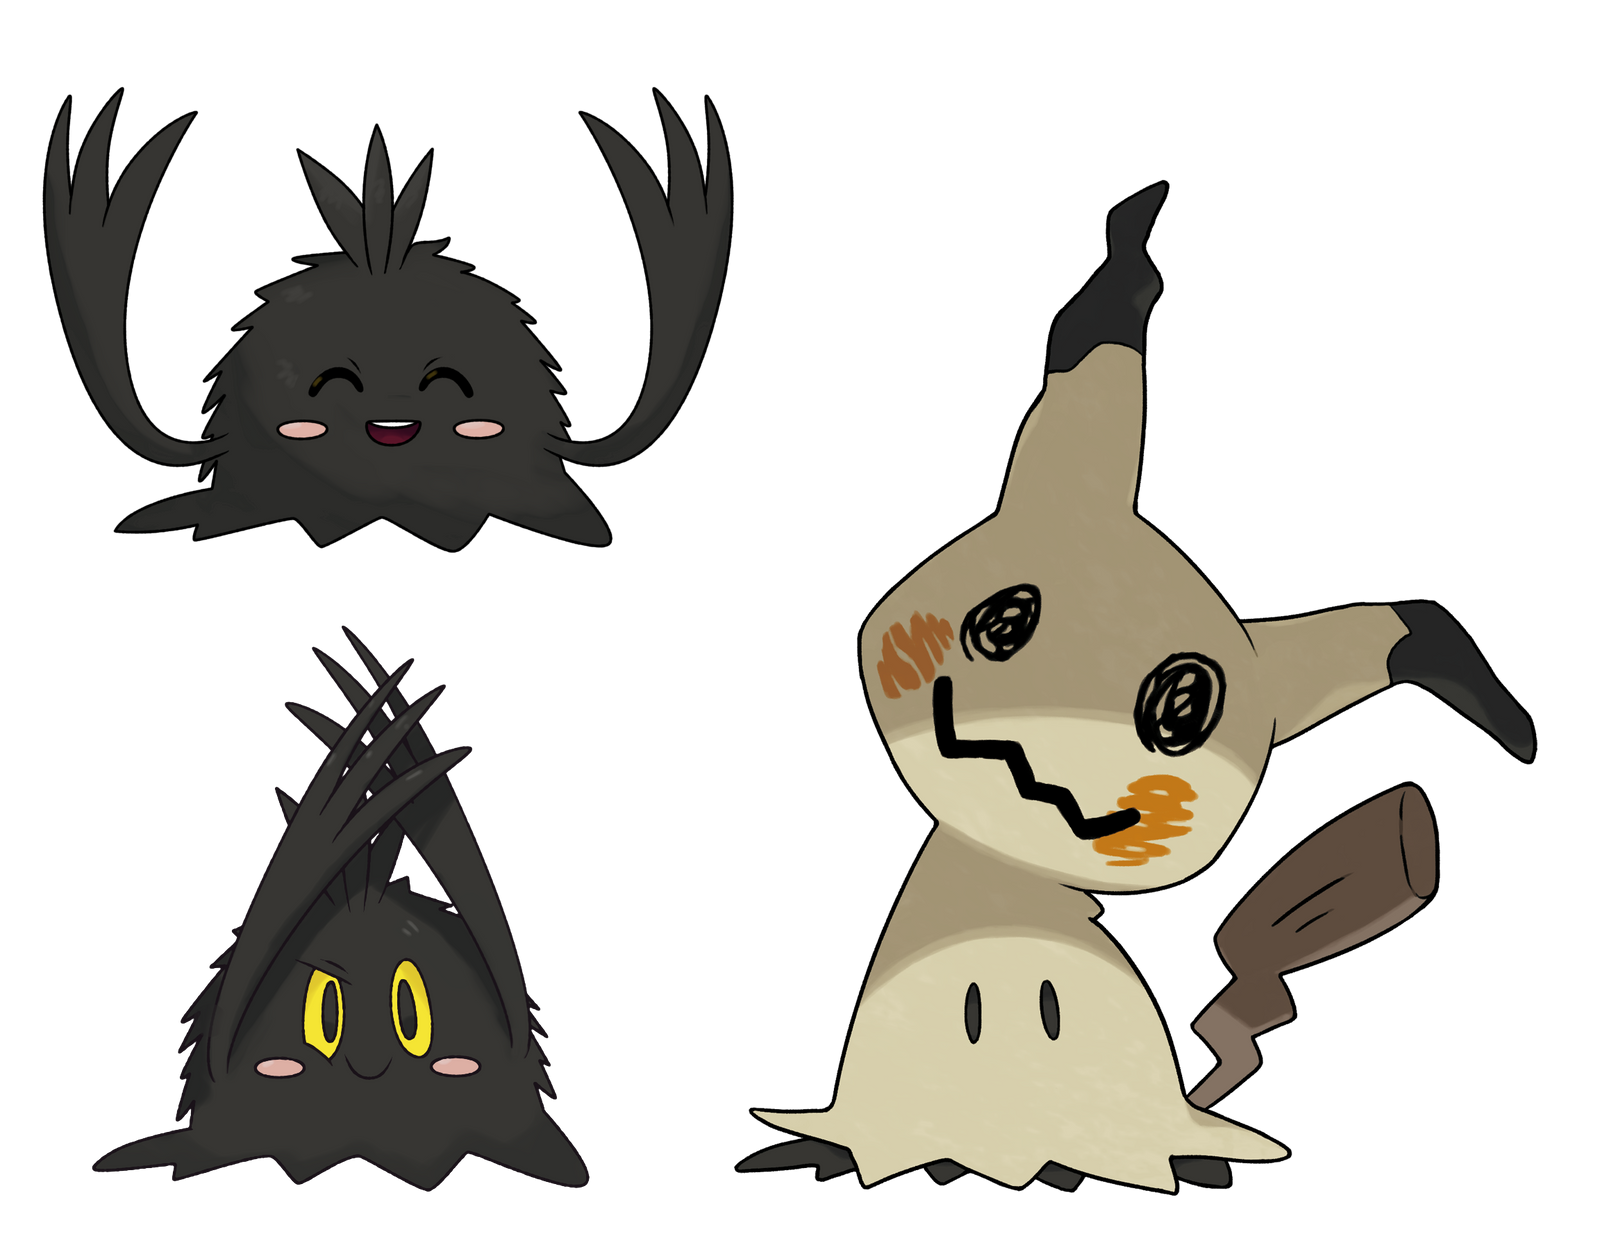 Mimikyu without disguise. by Alexalan on DeviantArt